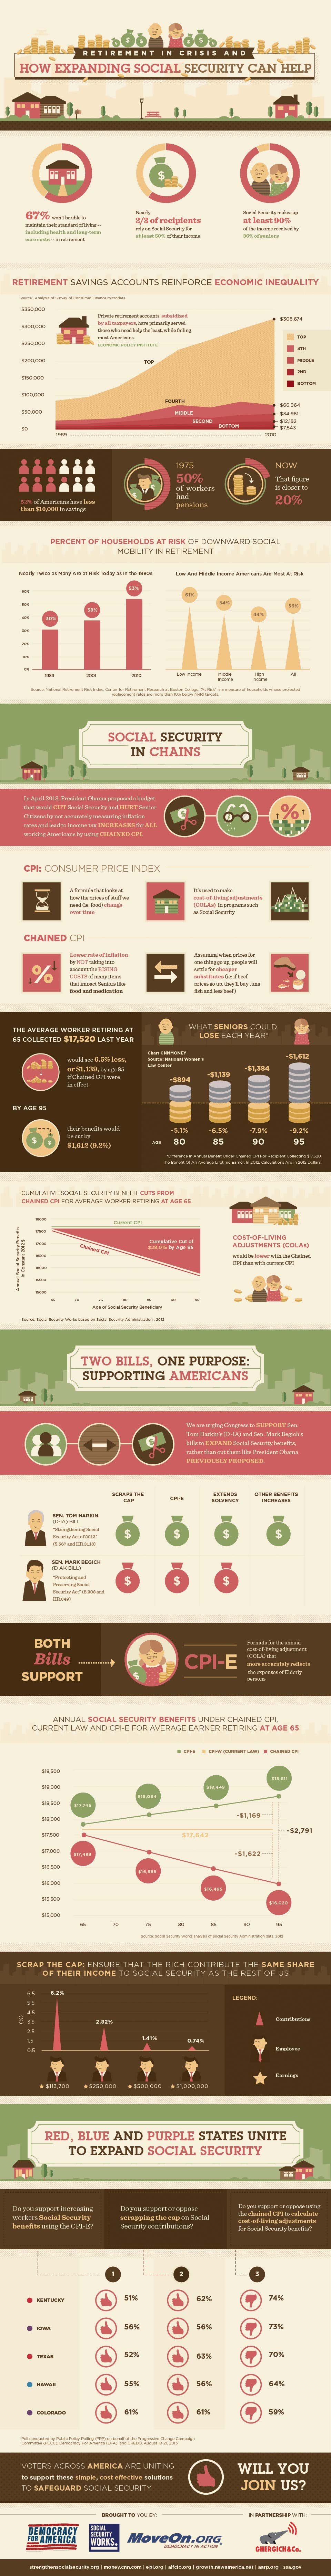 Retirement Crisis in US-Infographic